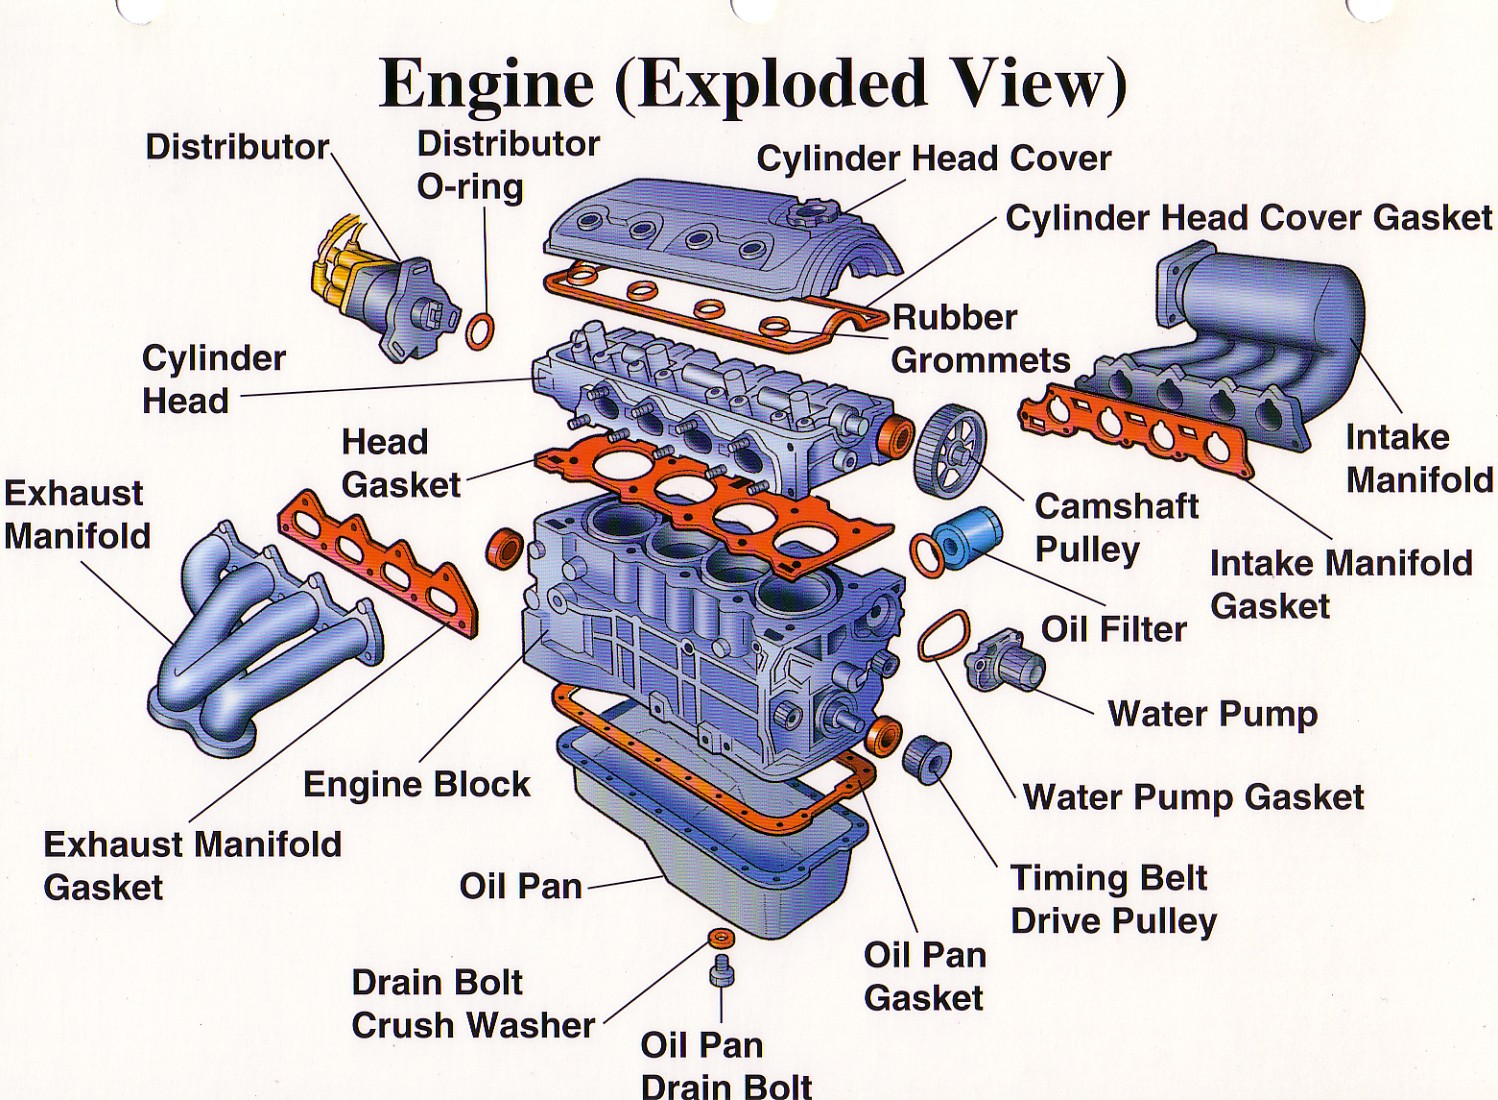 Superieur Parts Of An Engine